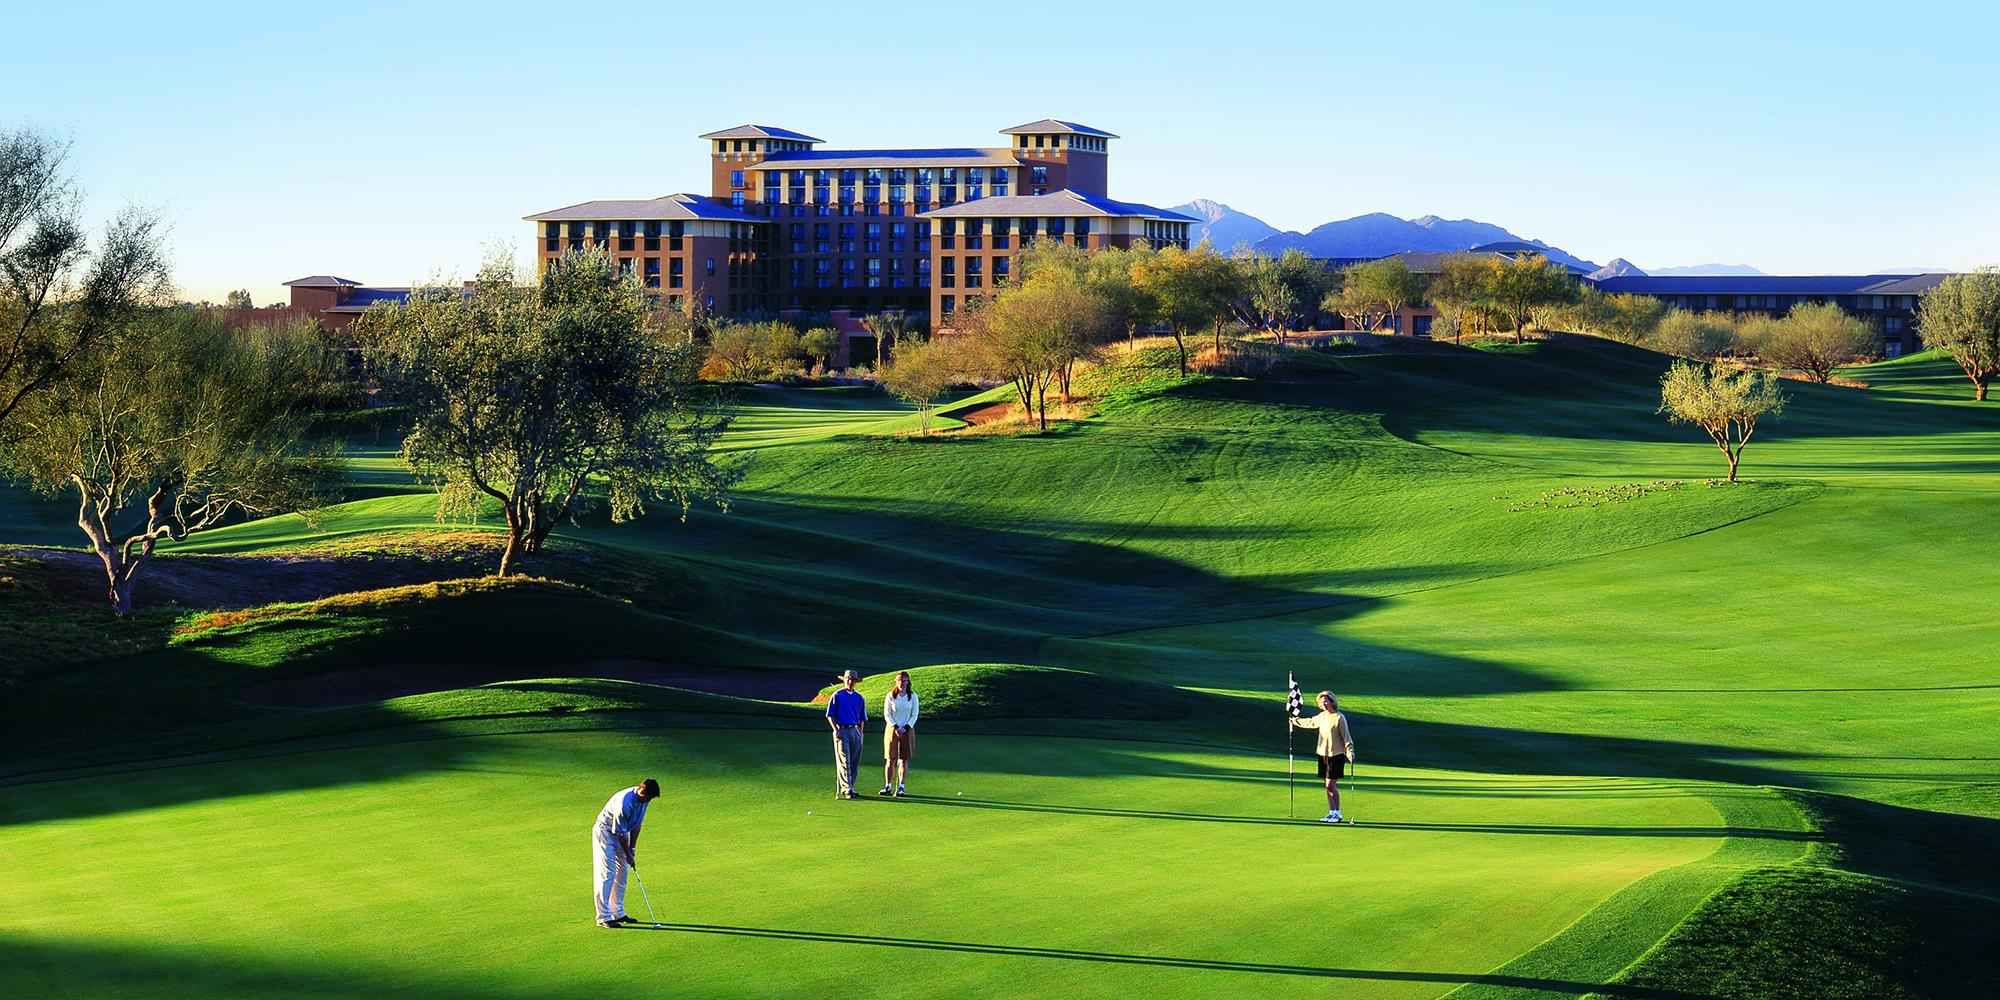 Kierland Resort & Golf Club